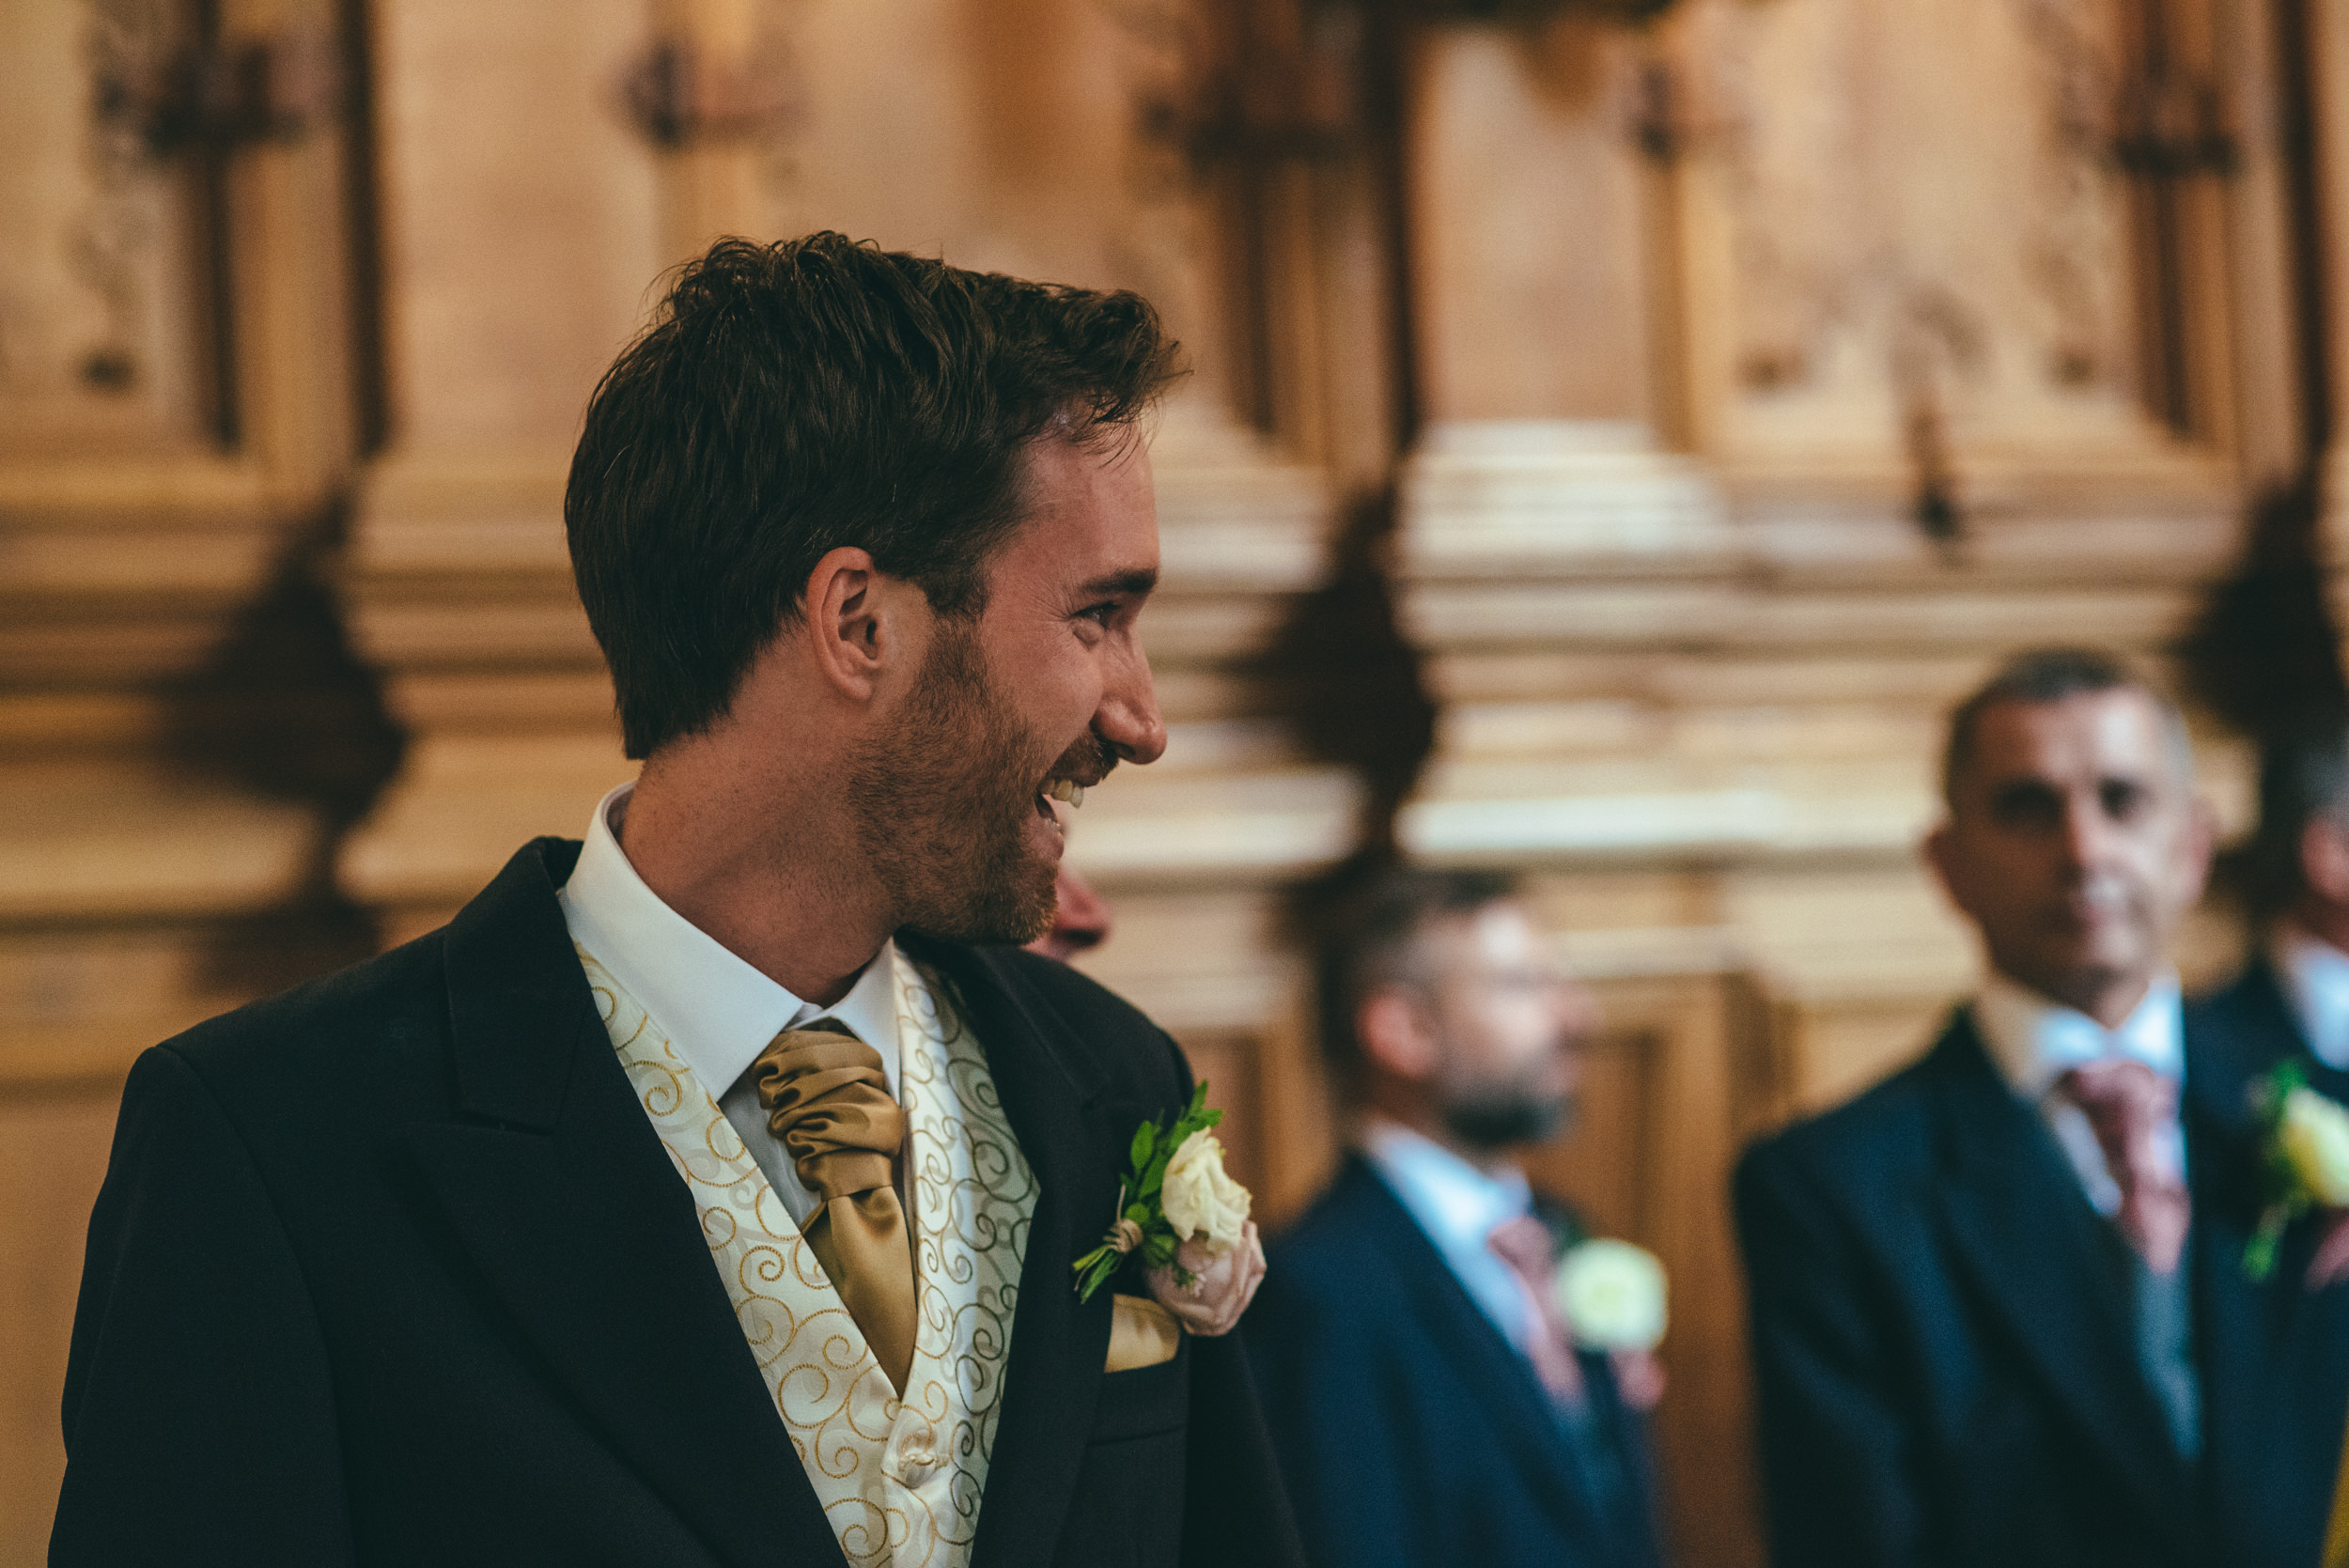 Groom watching his bride walk down the aisle at Harlaxton Manor